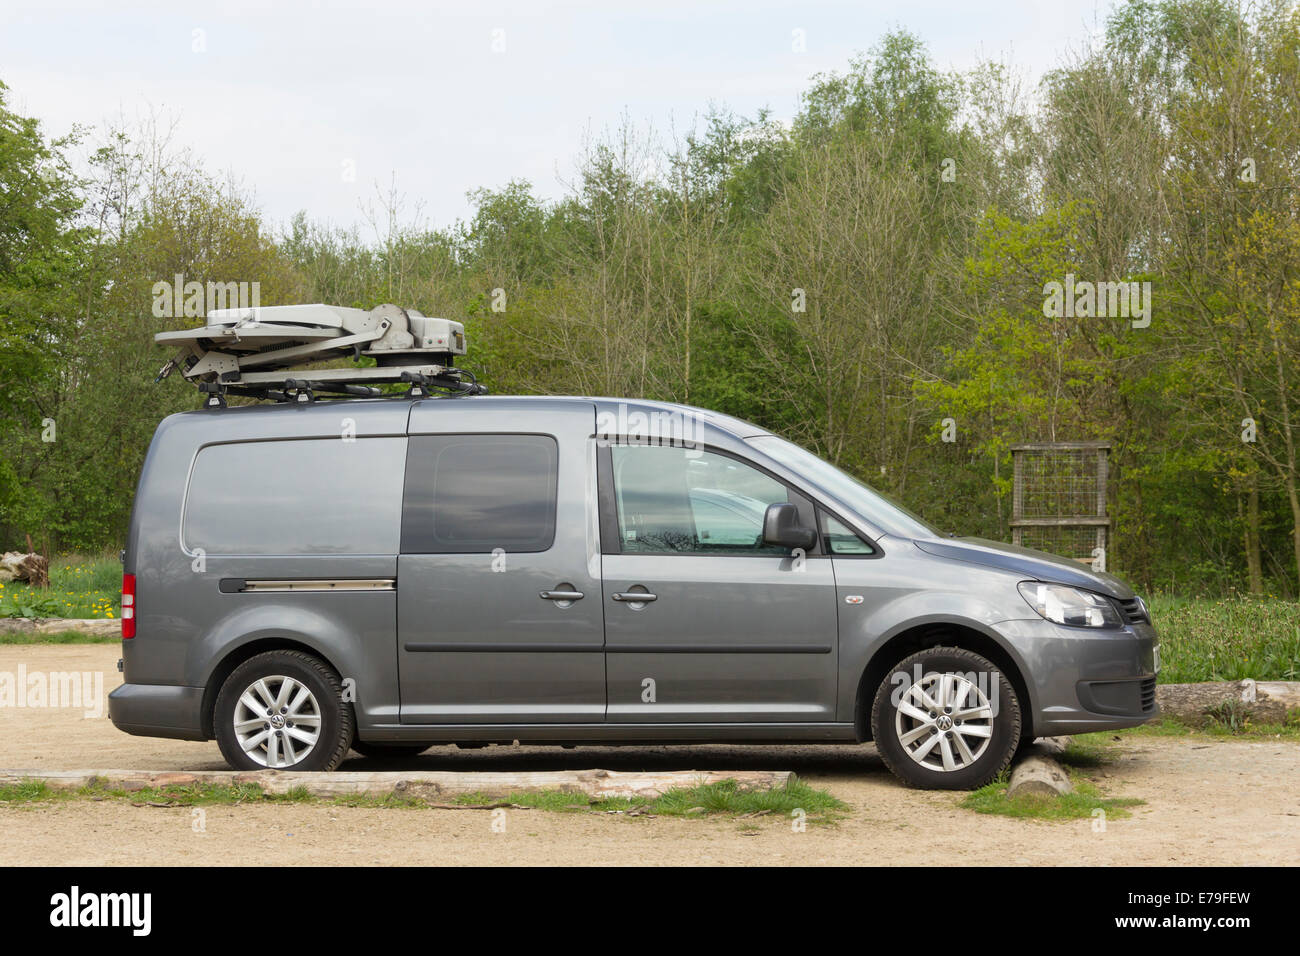 Roof Bars Stock Photos & Roof Bars Stock Images - Alamy